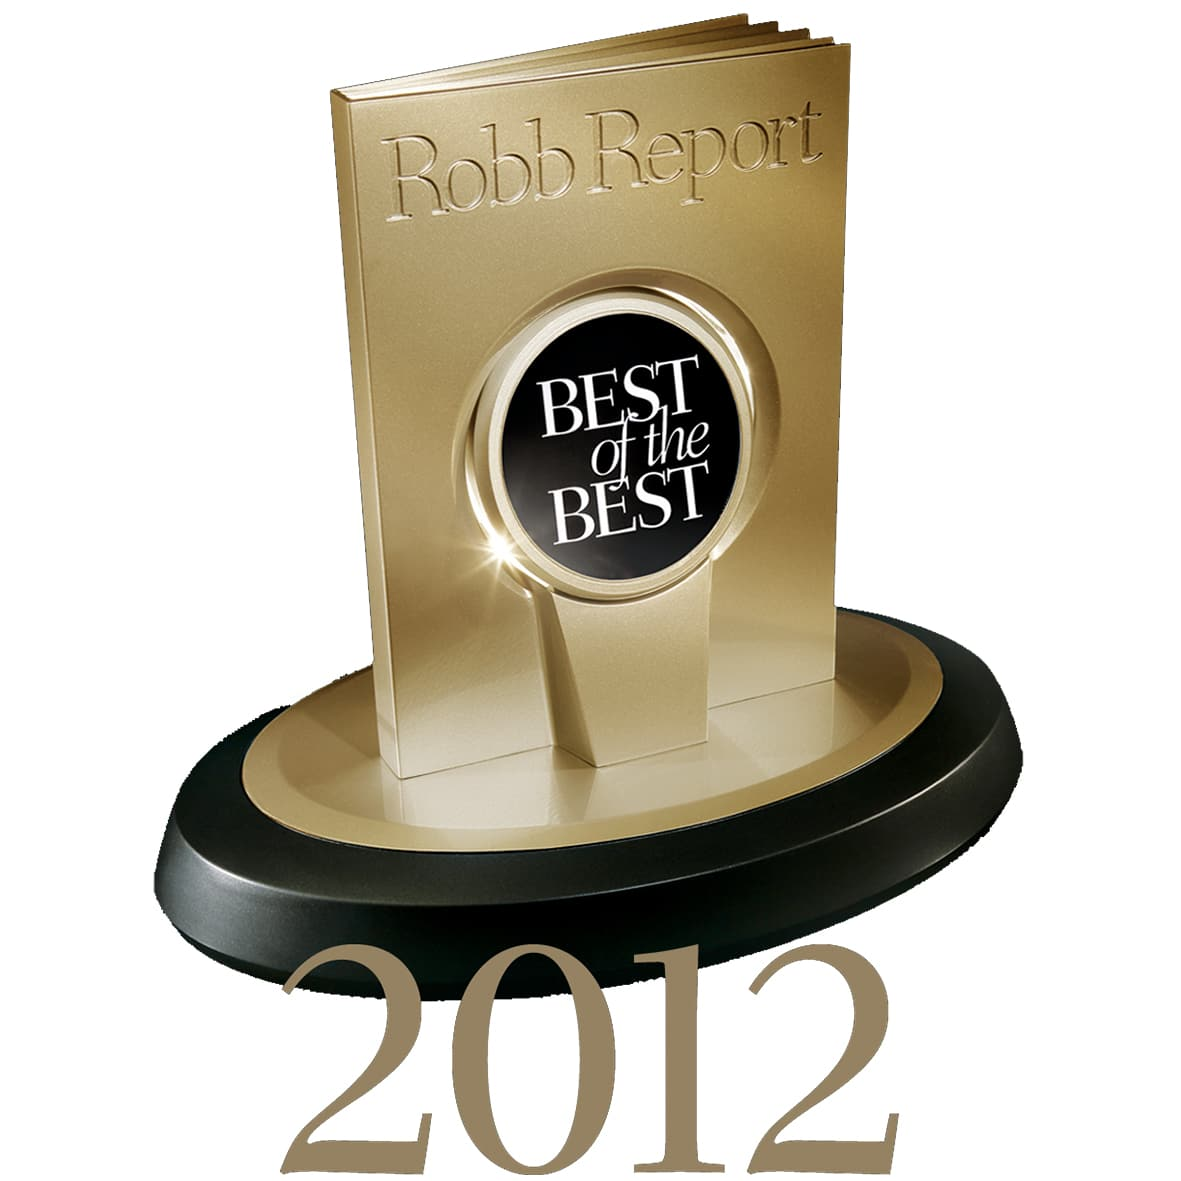 Robb Report award for S-15